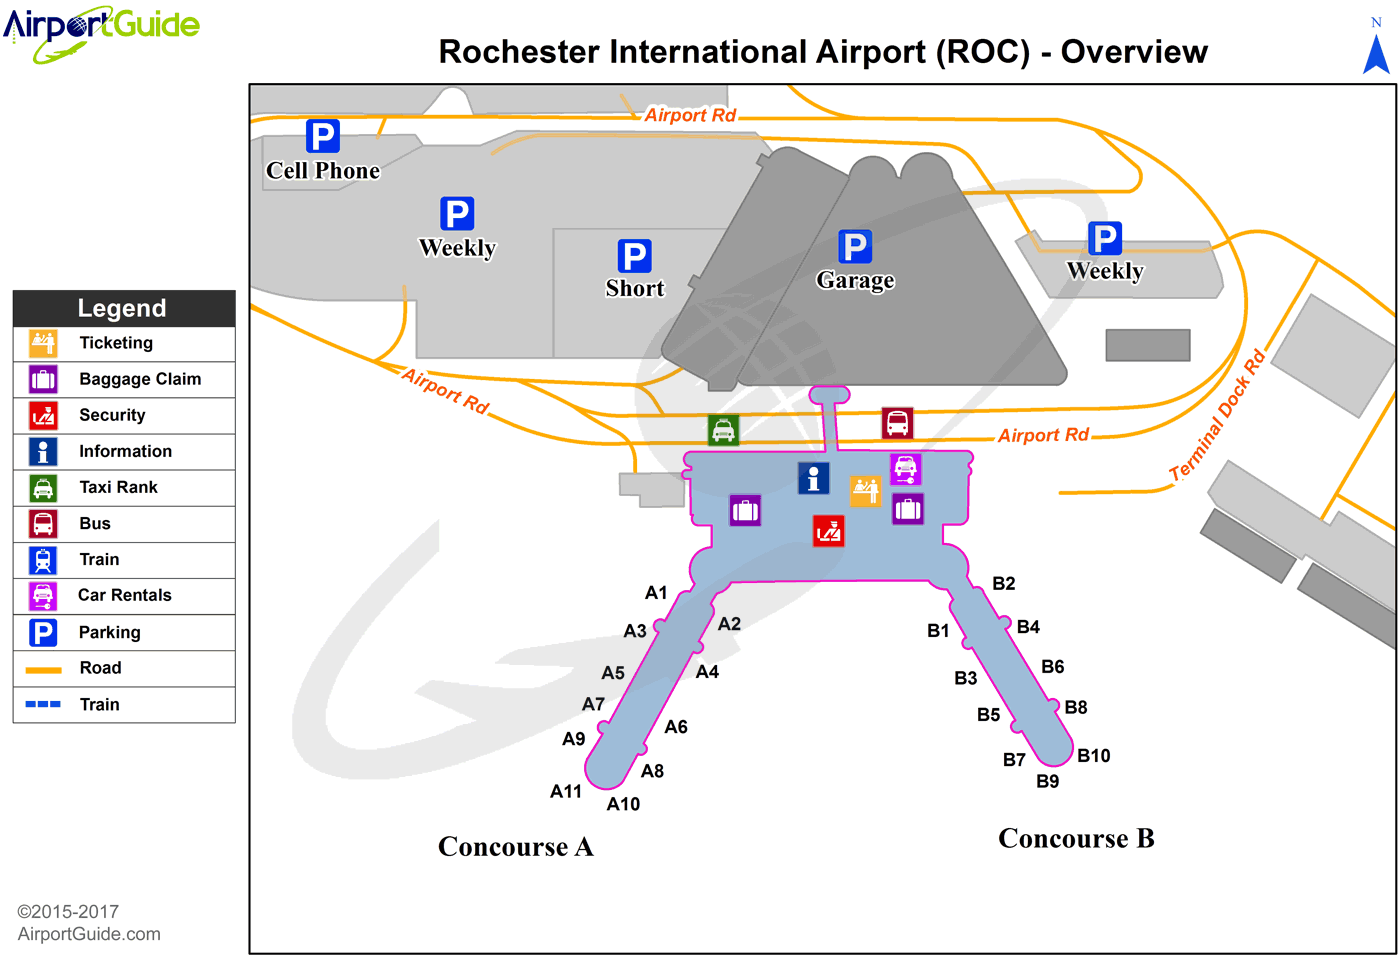 Rochester - Greater Rochester International (ROC) Airport Terminal Map - Overview